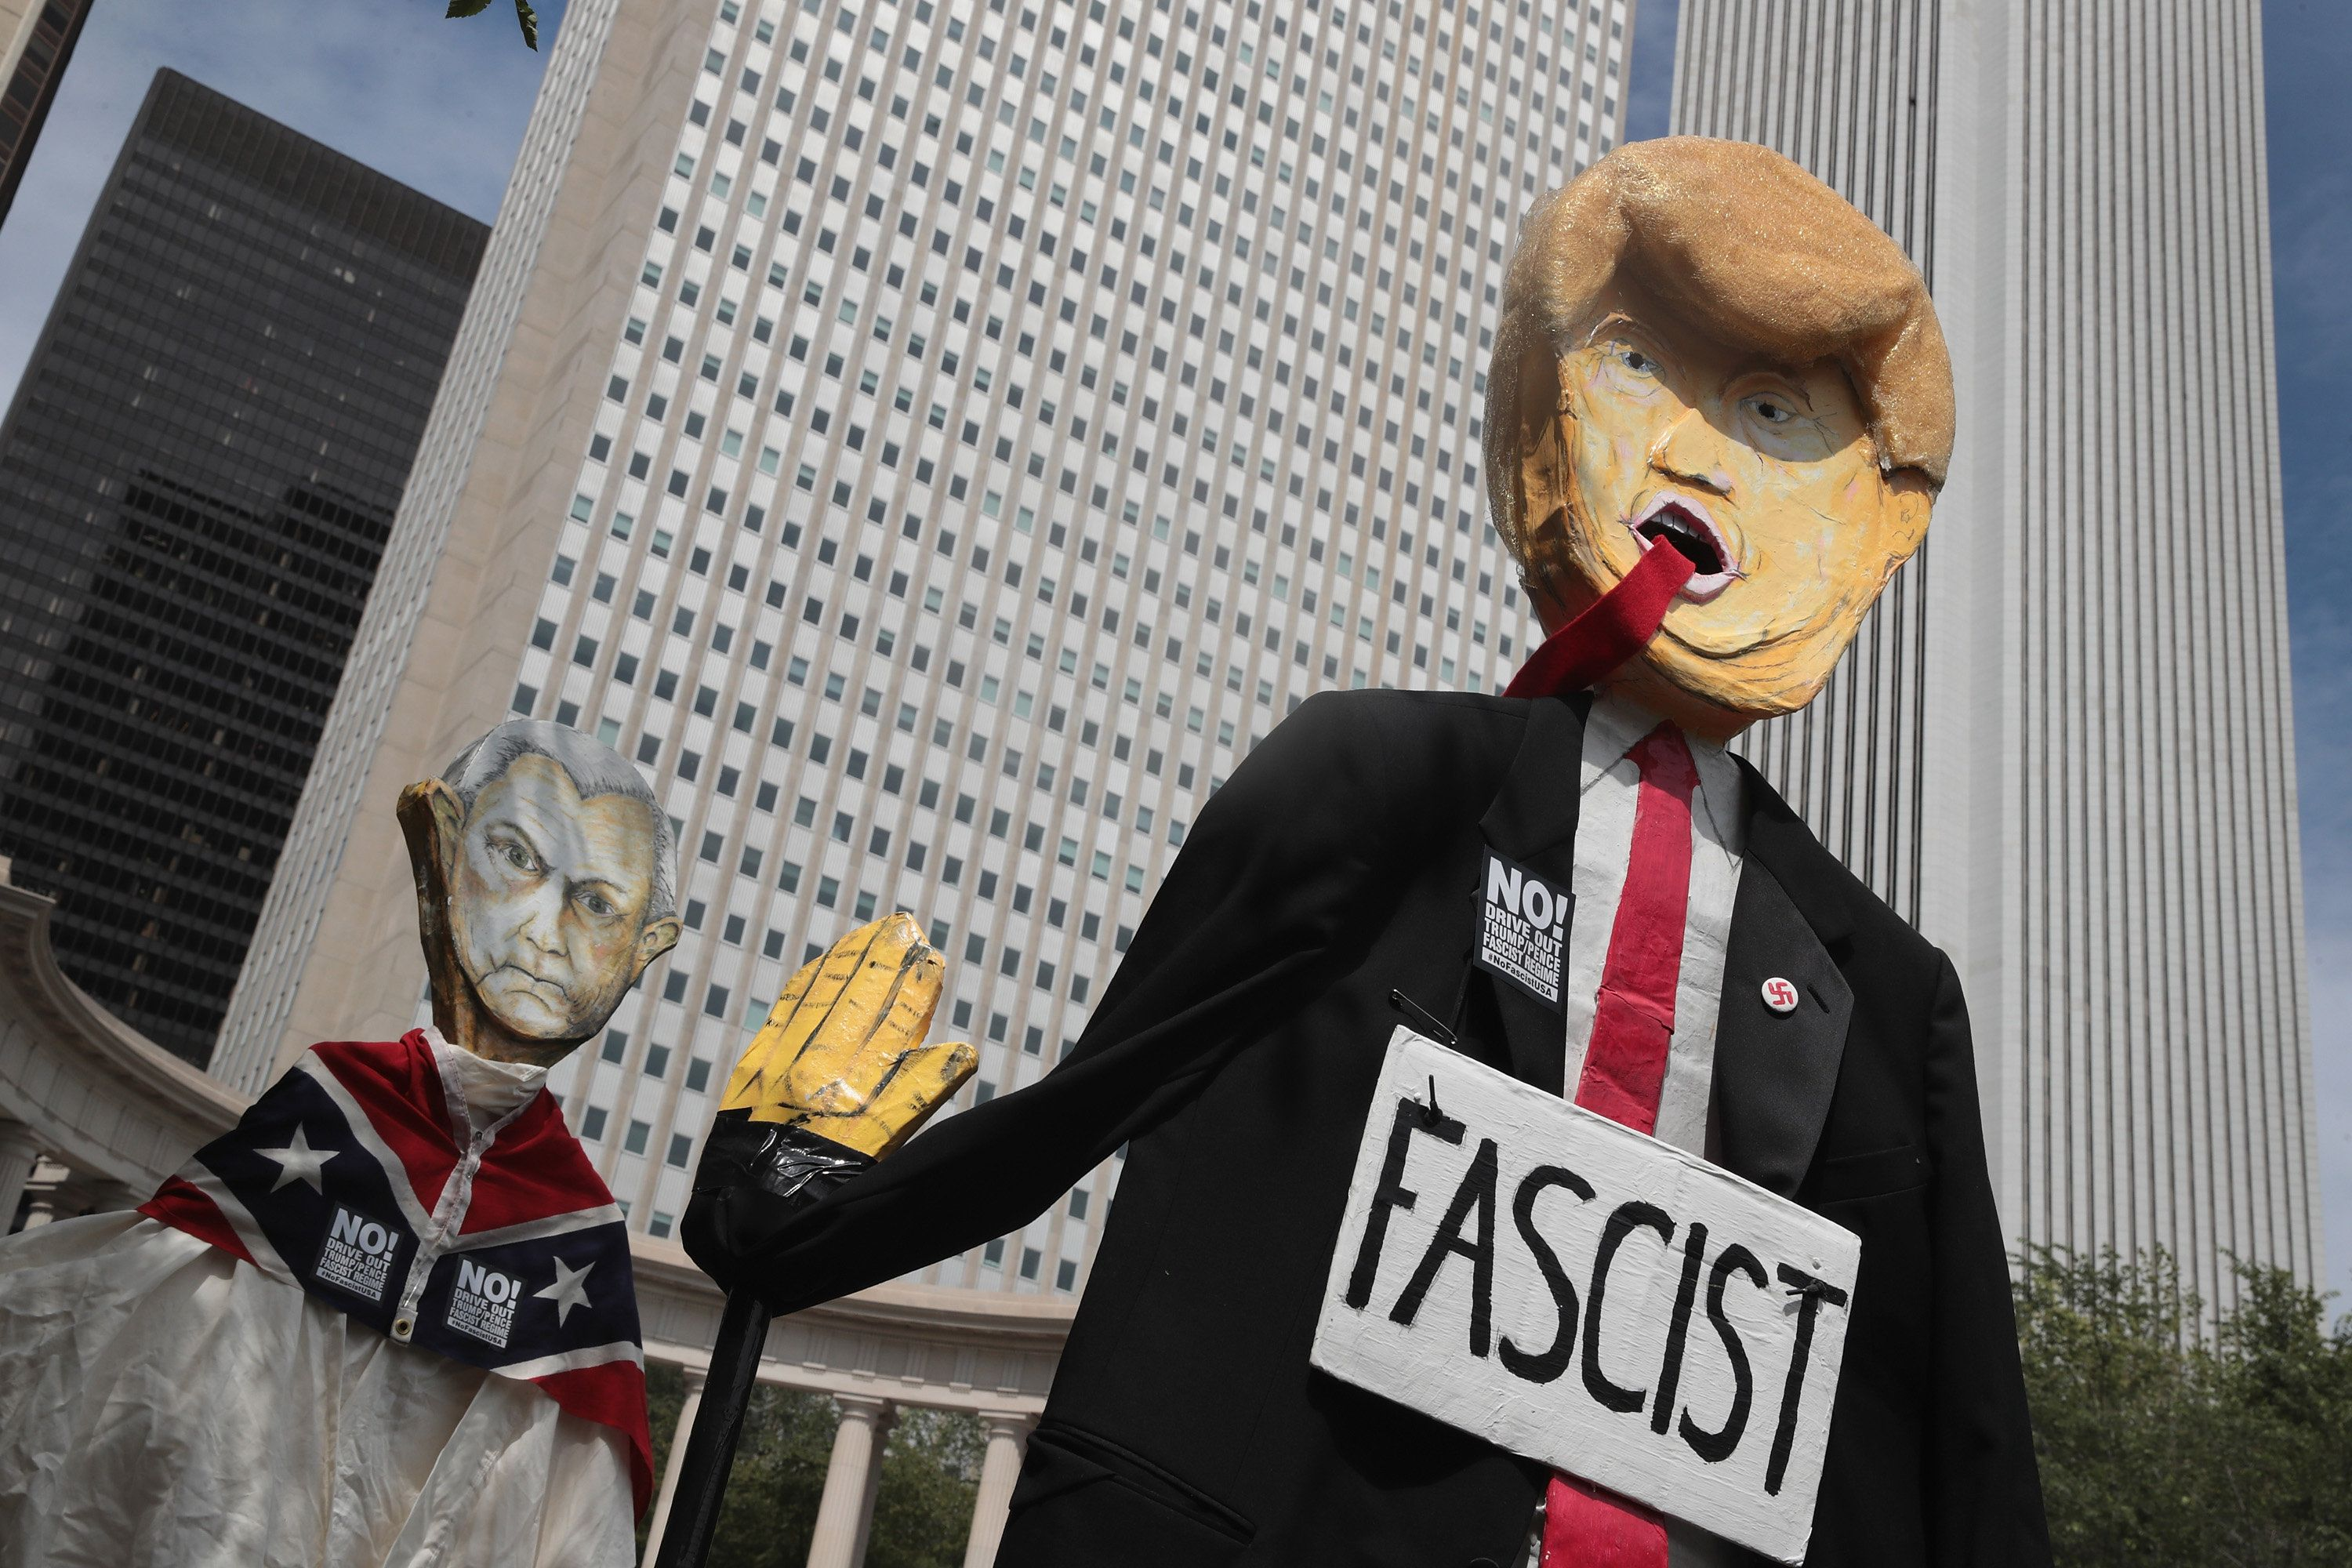 CHICAGO, IL - AUGUST 13:  Demonstrators protesting the alt-right movement and mourning the victims of yesterdays rally in Charlottesville, Virginia carry puppets of President Donald Trump and  U.S. Attorney General Jeff Sessionson August 13, 2017 in Chicago, Illinois. One person was killed and 19 others were injured in Charlottesville when a car plowed into a group of activists who were preparing to march in opposition to a nearby white nationalists rally. Two police officers were also killed when a helicopter they were using to monitor the rally crashed.  (Photo by Scott Olson/Getty Images)